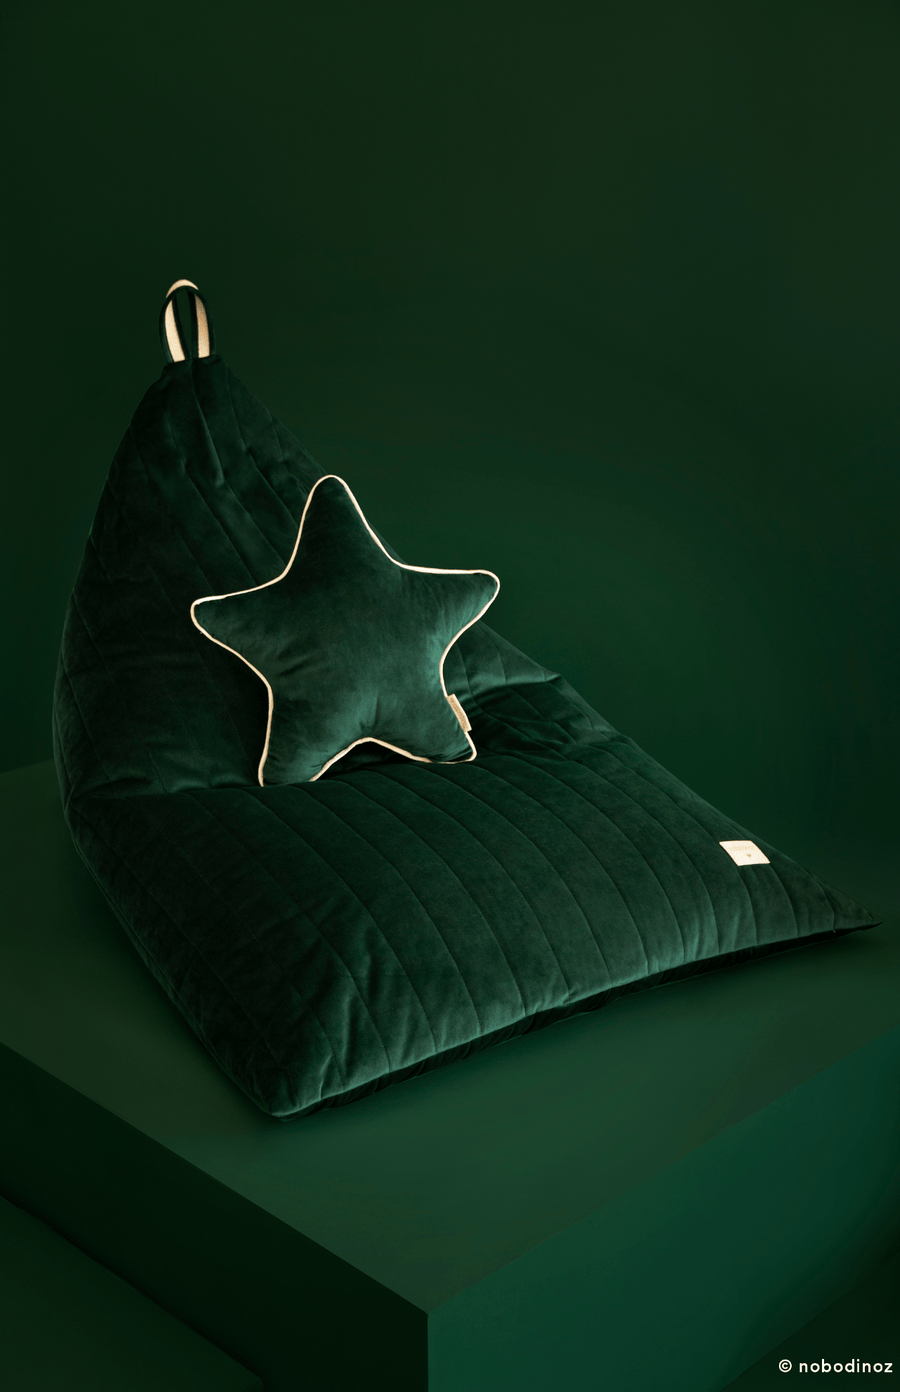 Nobodinoz Essaouria Velvet Bean Bag - Jungle Green